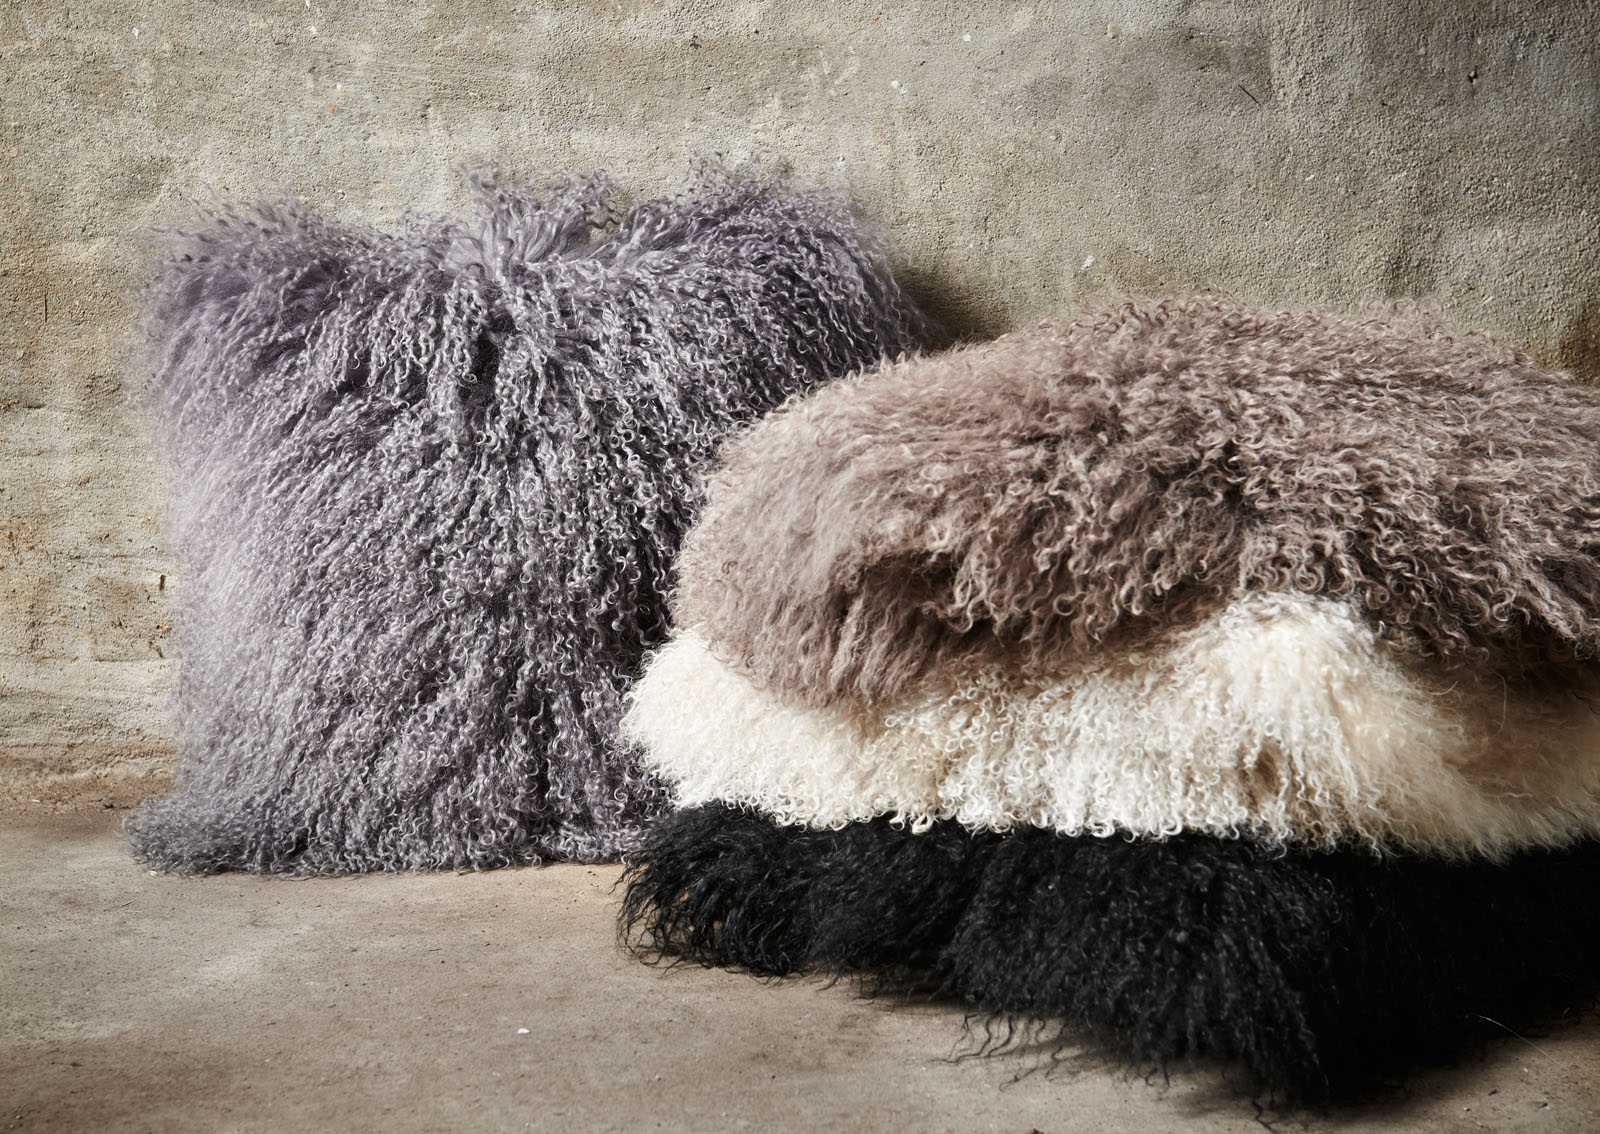 Tibetan Sheepskin Cushions - Image courtesy of Natures Collection